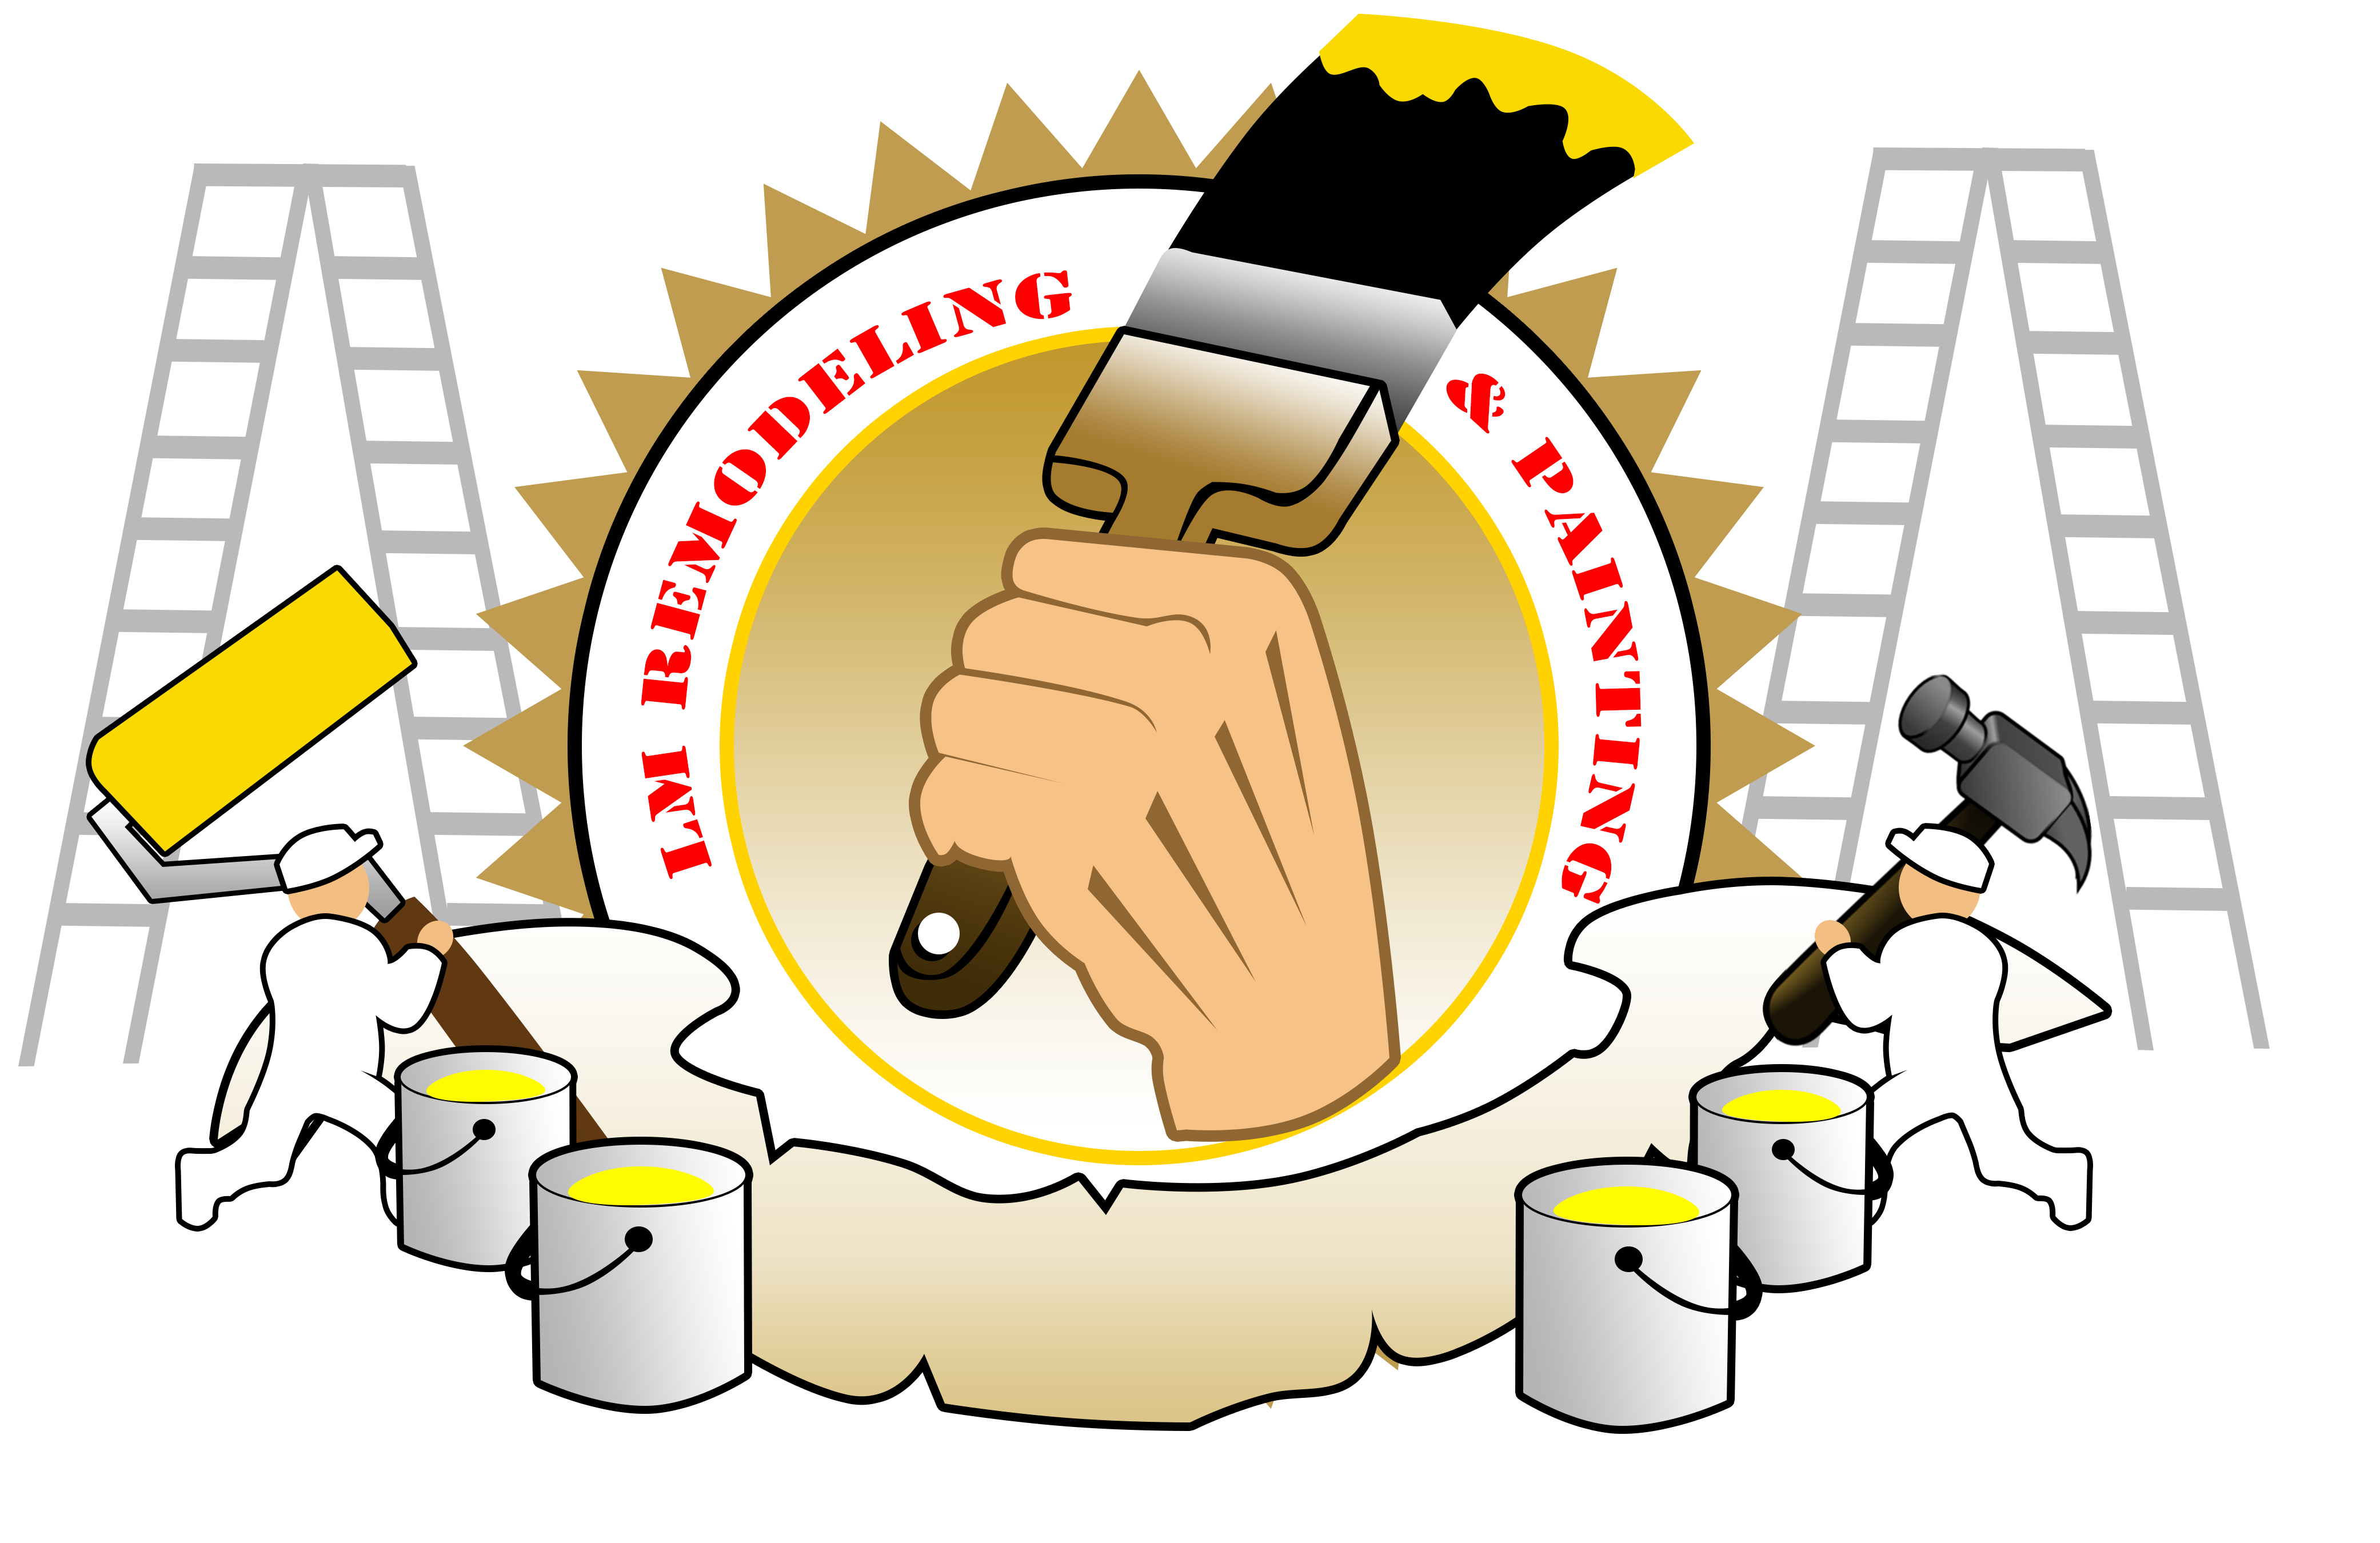 Lm remodeling and painting. Painter clipart remodel